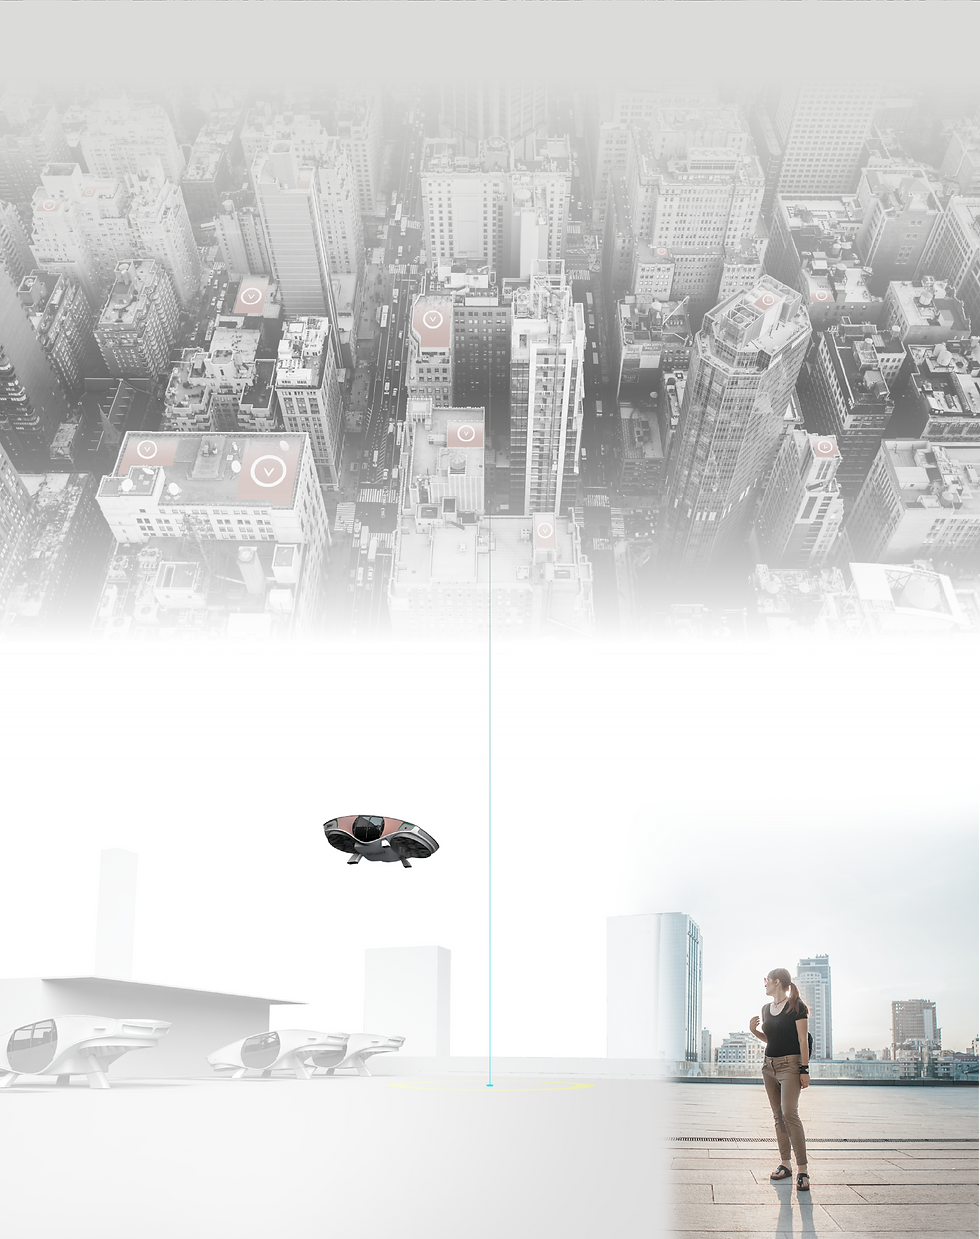 Urban Vtol connecting from point A to B on city rooftops